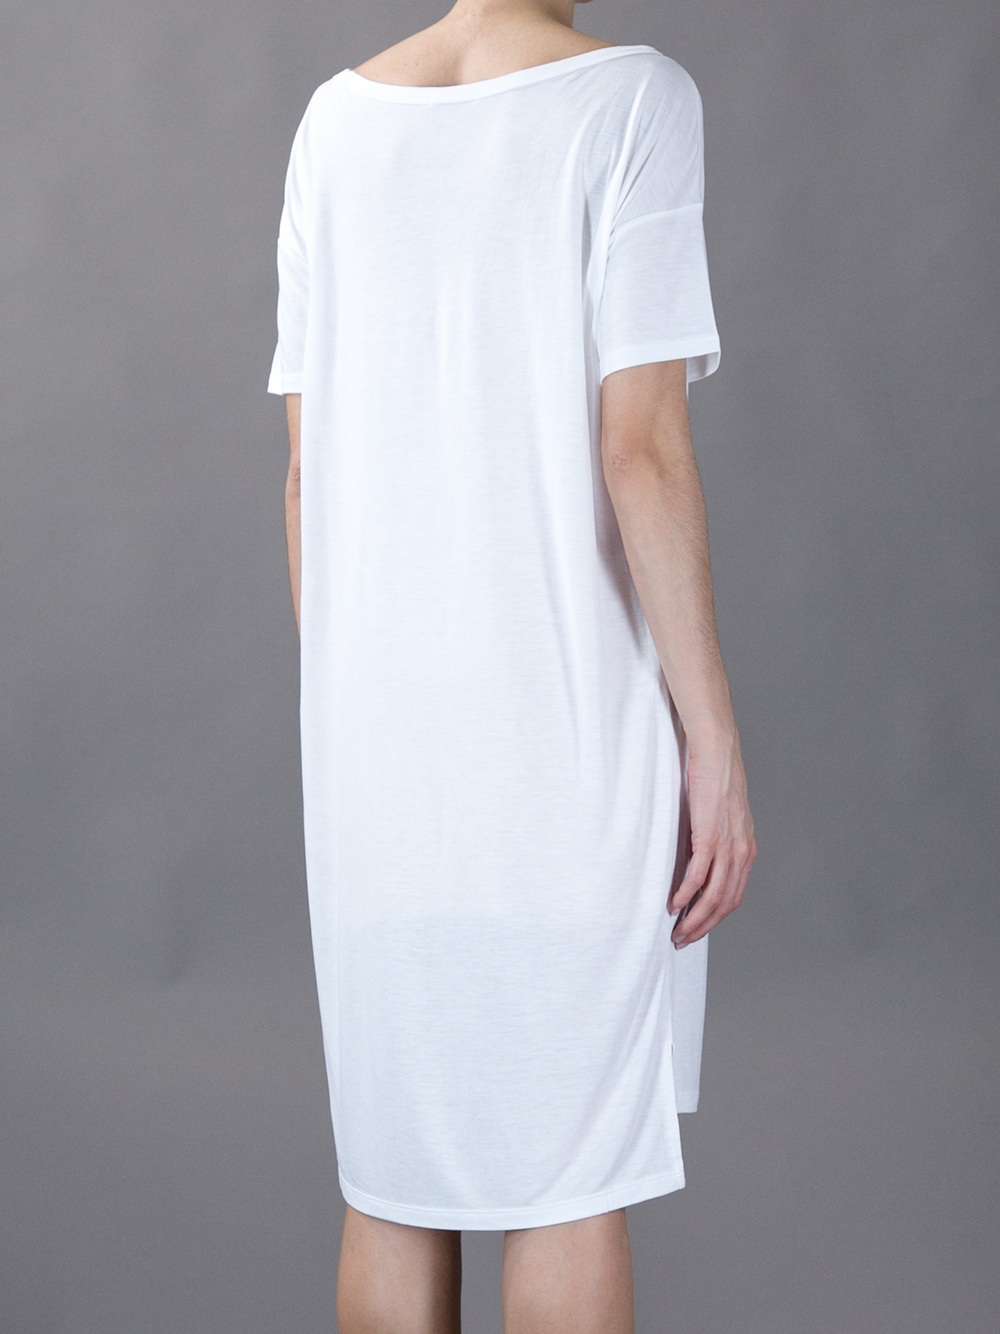 T by alexander wang t shirt dress in white lyst for Dressy white t shirt